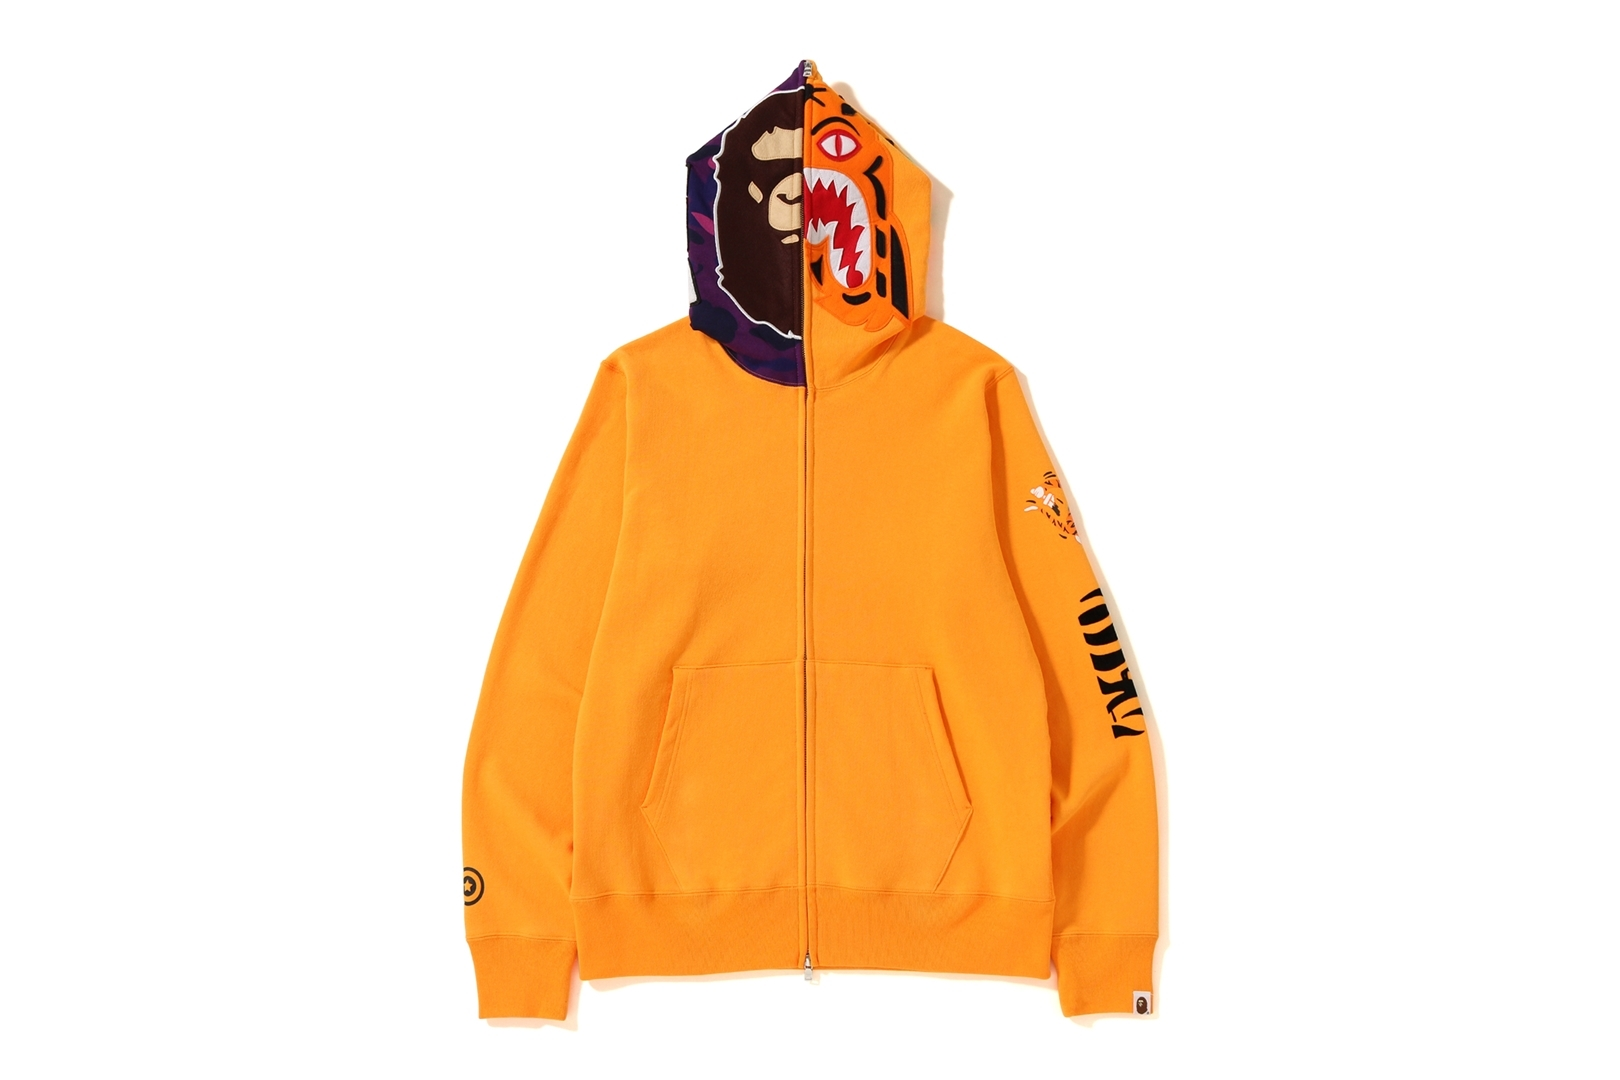 2ND APE TIGER FULL ZIP HOODIE_a0174495_17222494.jpg